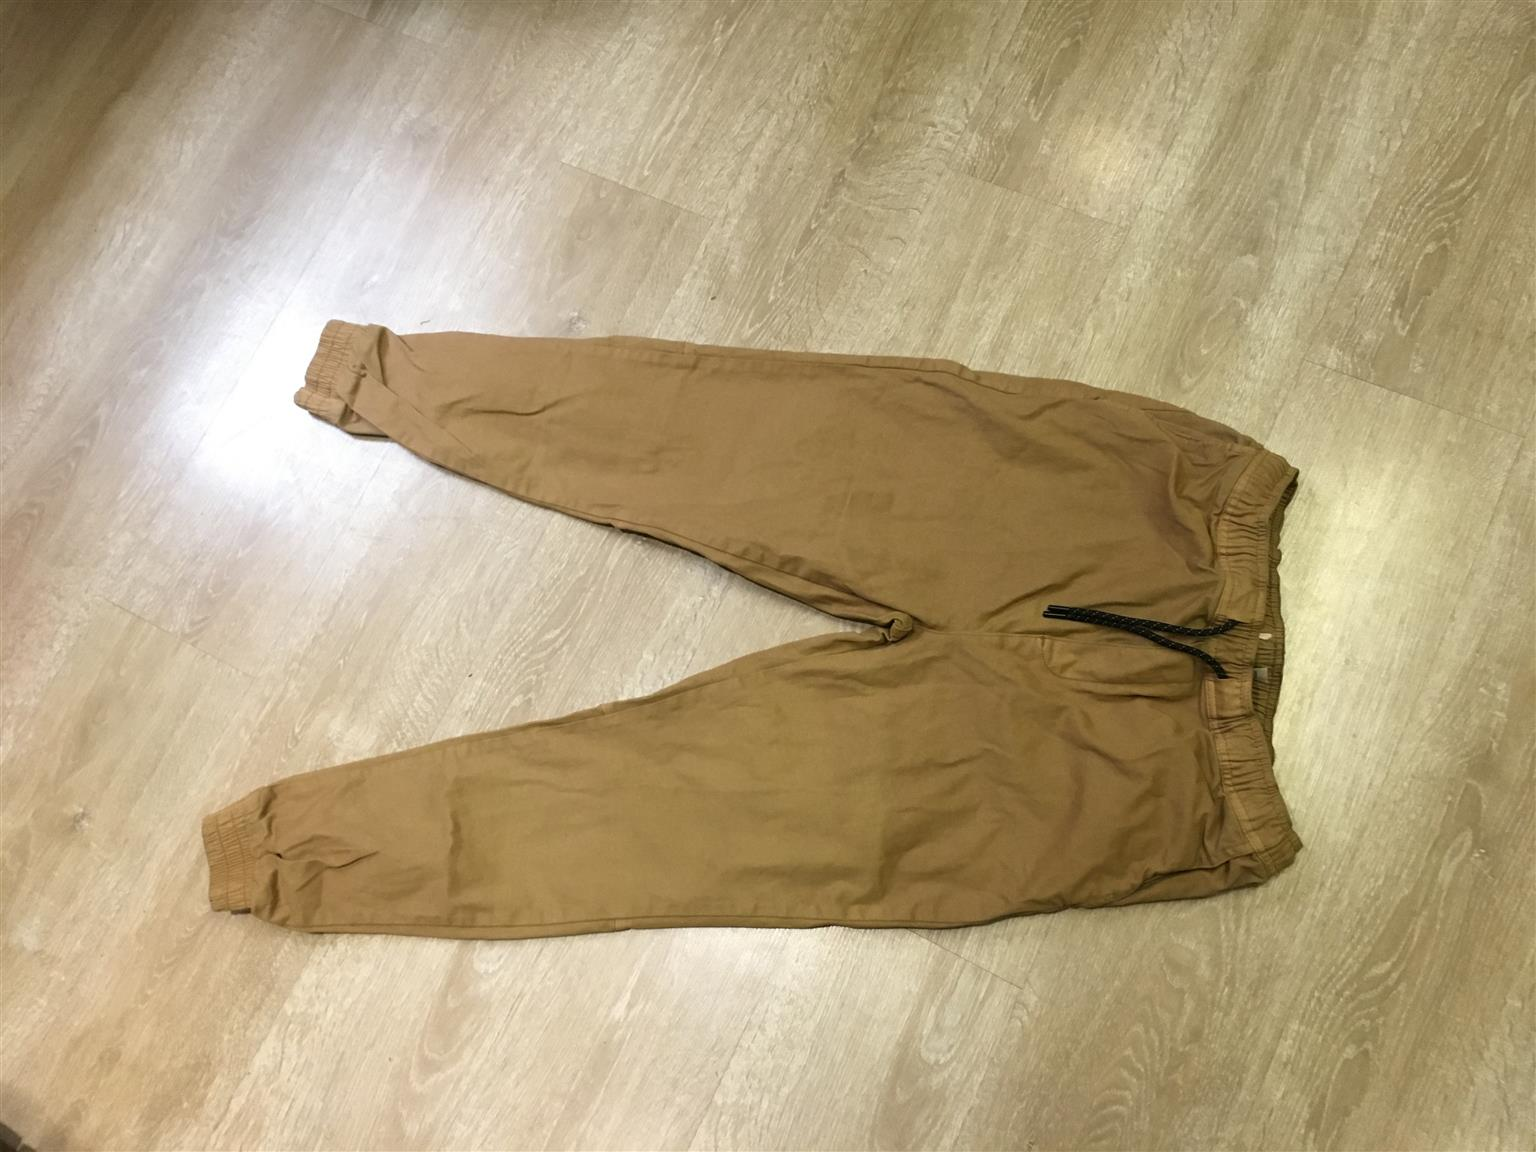 Cuffed pants for sale.